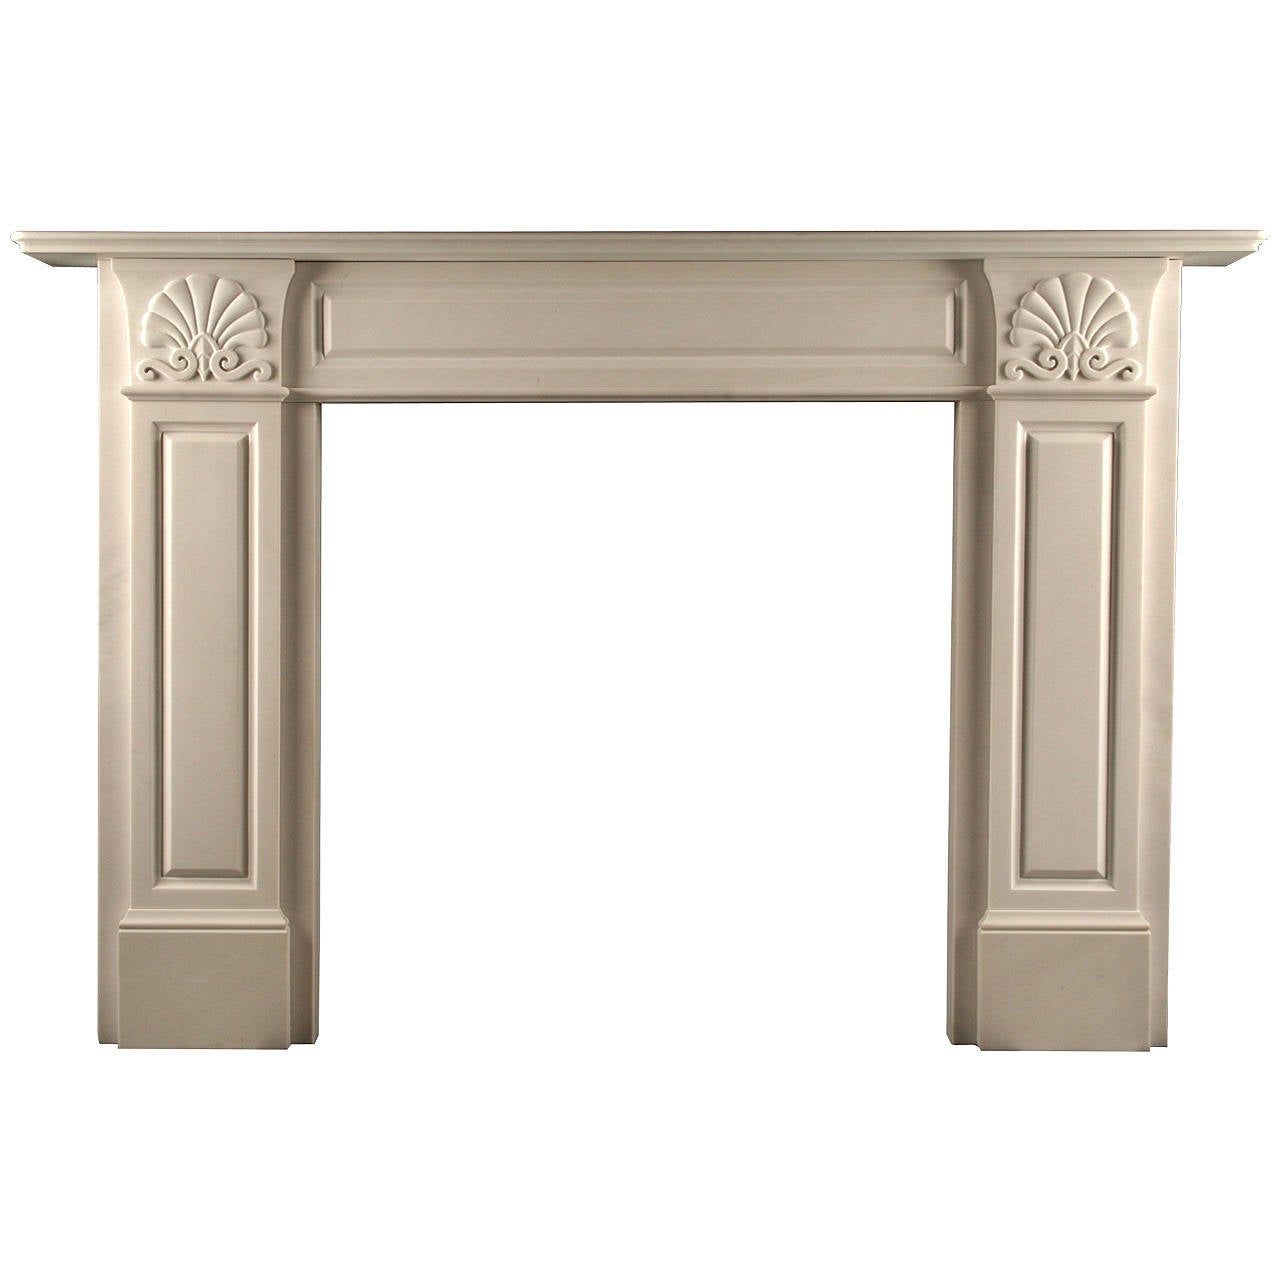 A Grand Regency Fireplace Mantel in White Statuary Marble